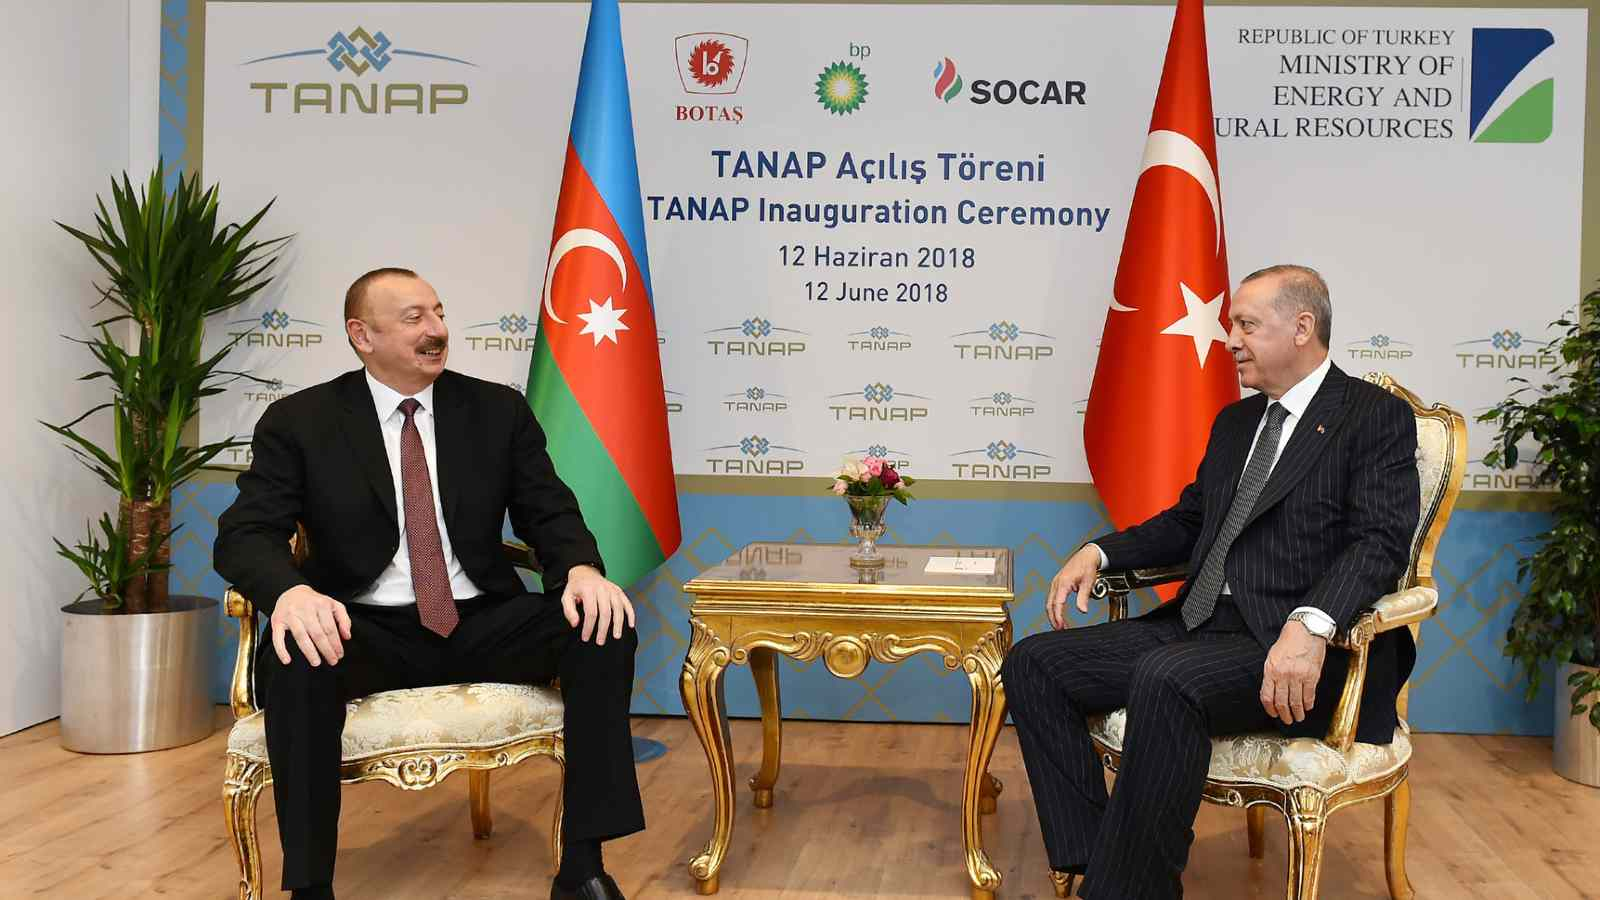 Photo: Ilham Aliyev met with Turkish President Recep Tayyip Erdogan in Eskisehir. June 8, 2018. Credit: Wikimedia Commons